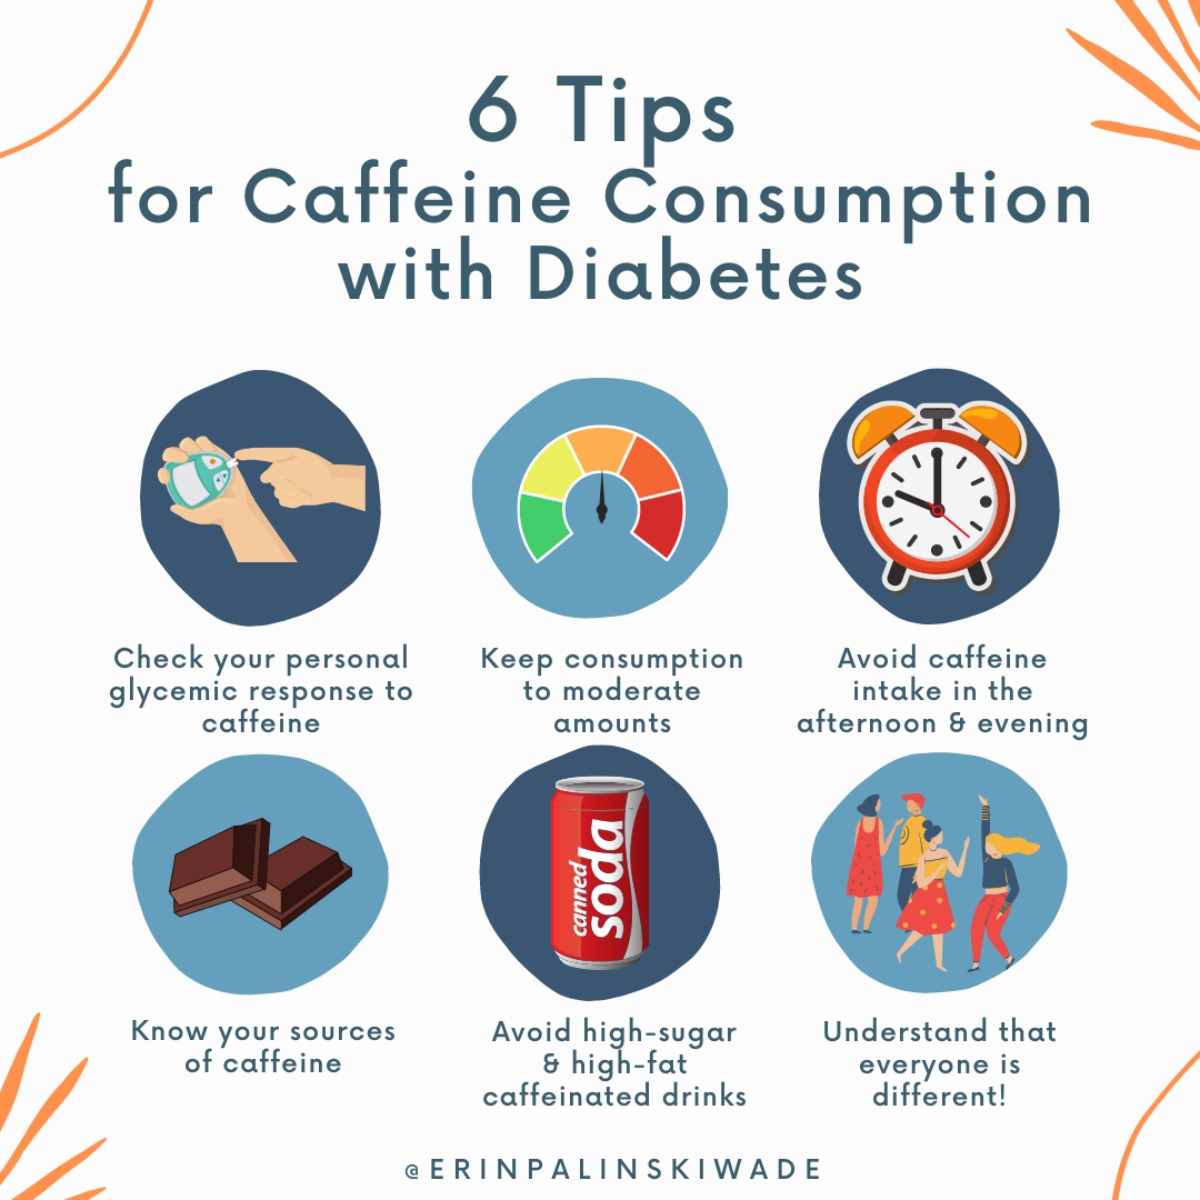 Top 6 Tips for Caffeine Consumption with Diabetes